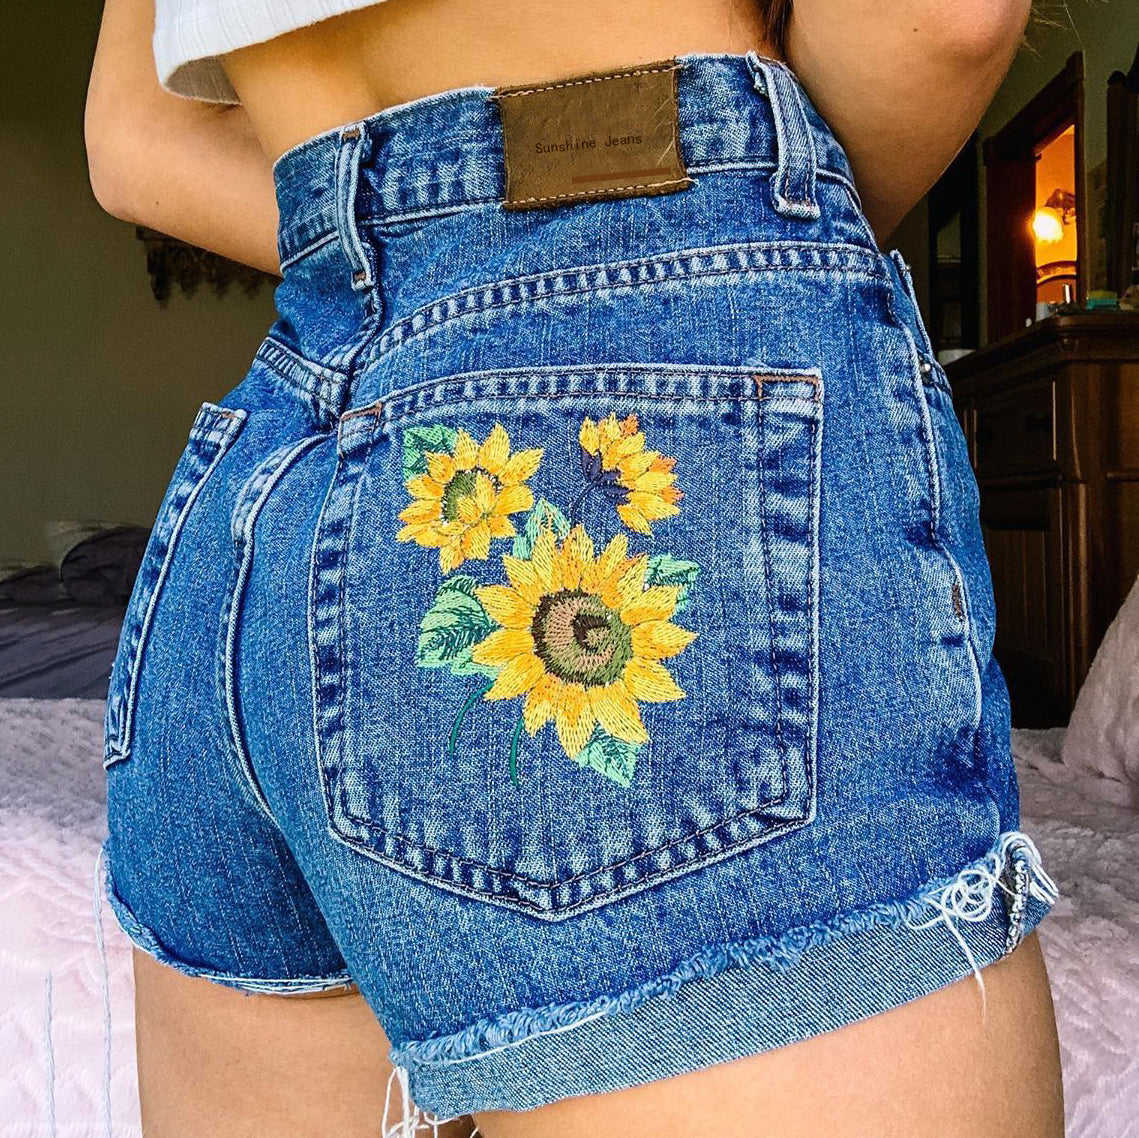 Vintage casual sunflower embroidered denim shorts